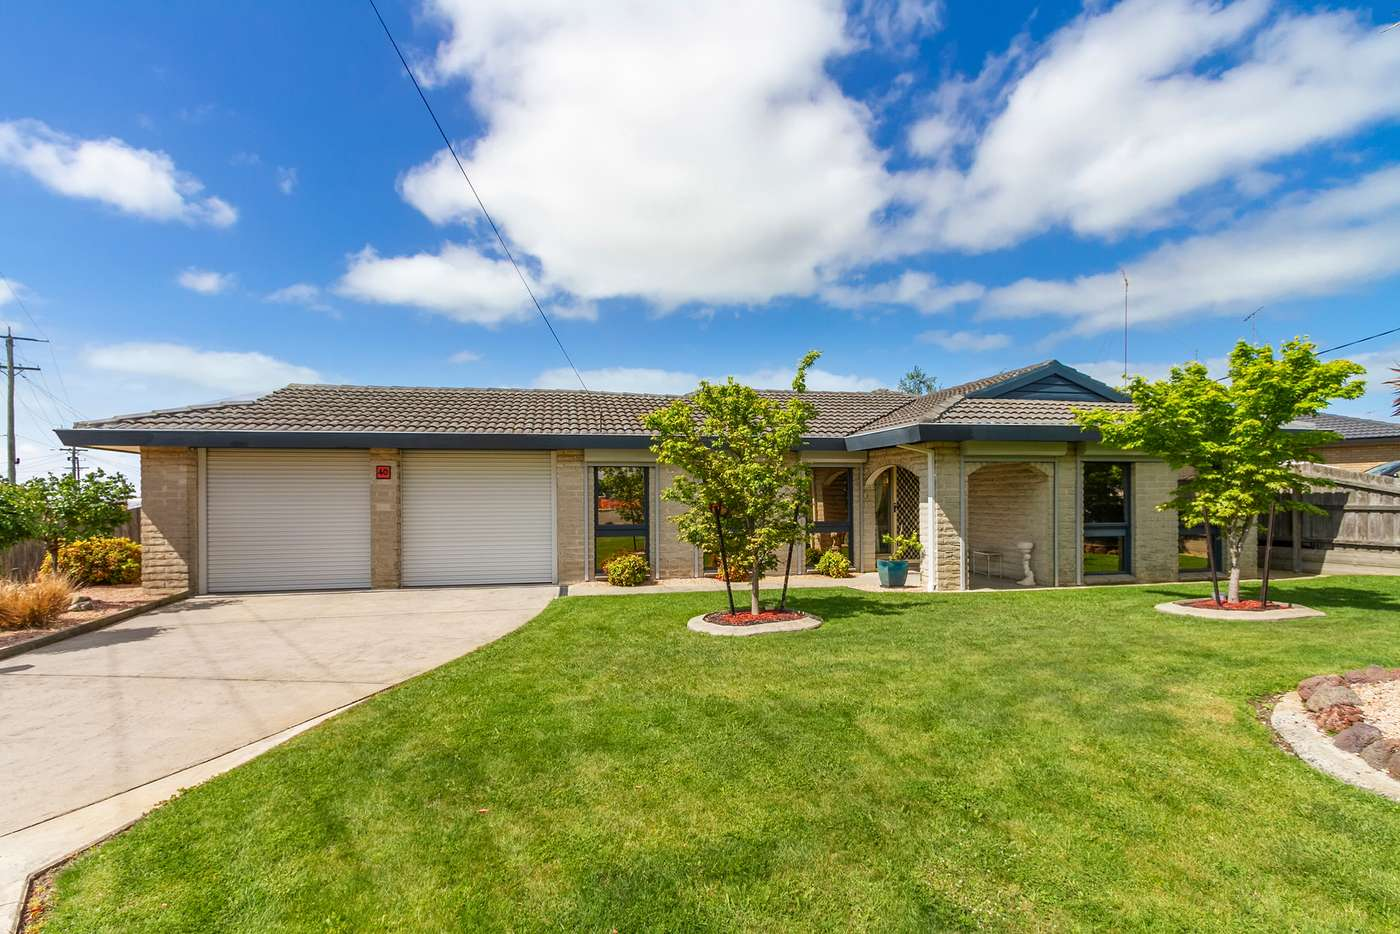 Main view of Homely house listing, 40 Doyne Crescent, Traralgon VIC 3844